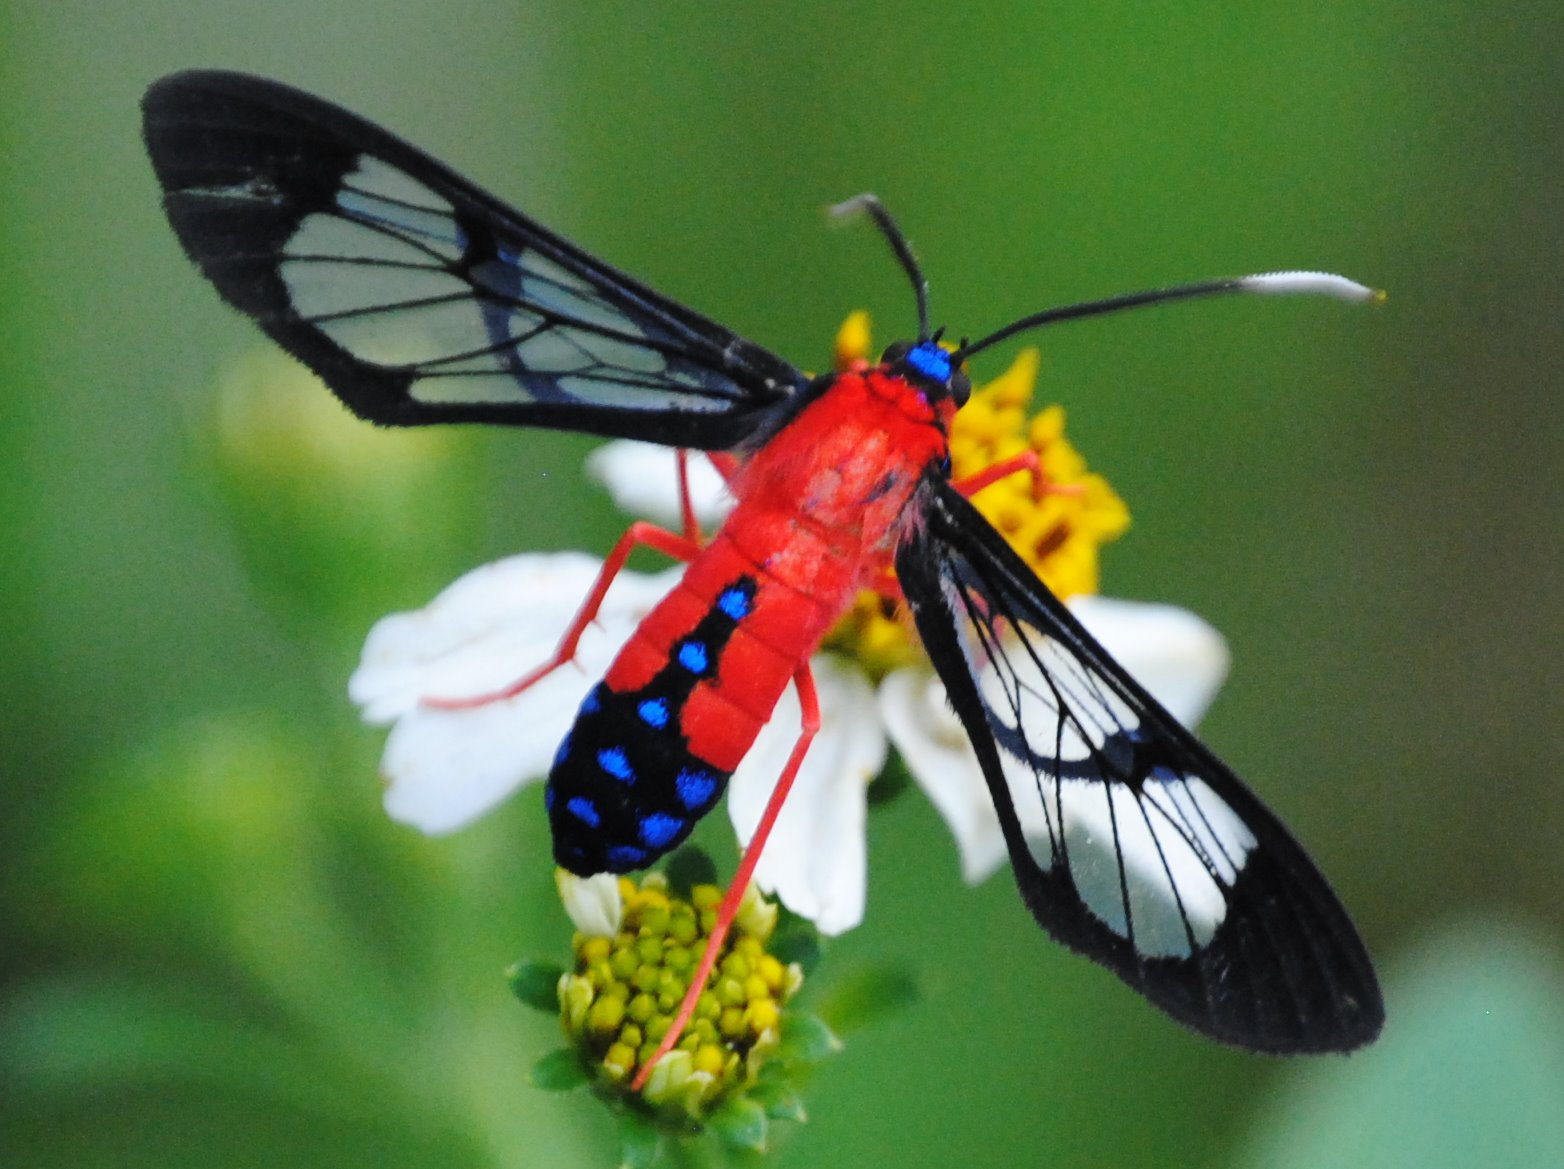 Georgia Moth Series – Scarlet-Bodied Wasp Moth - Proactive Pest Control